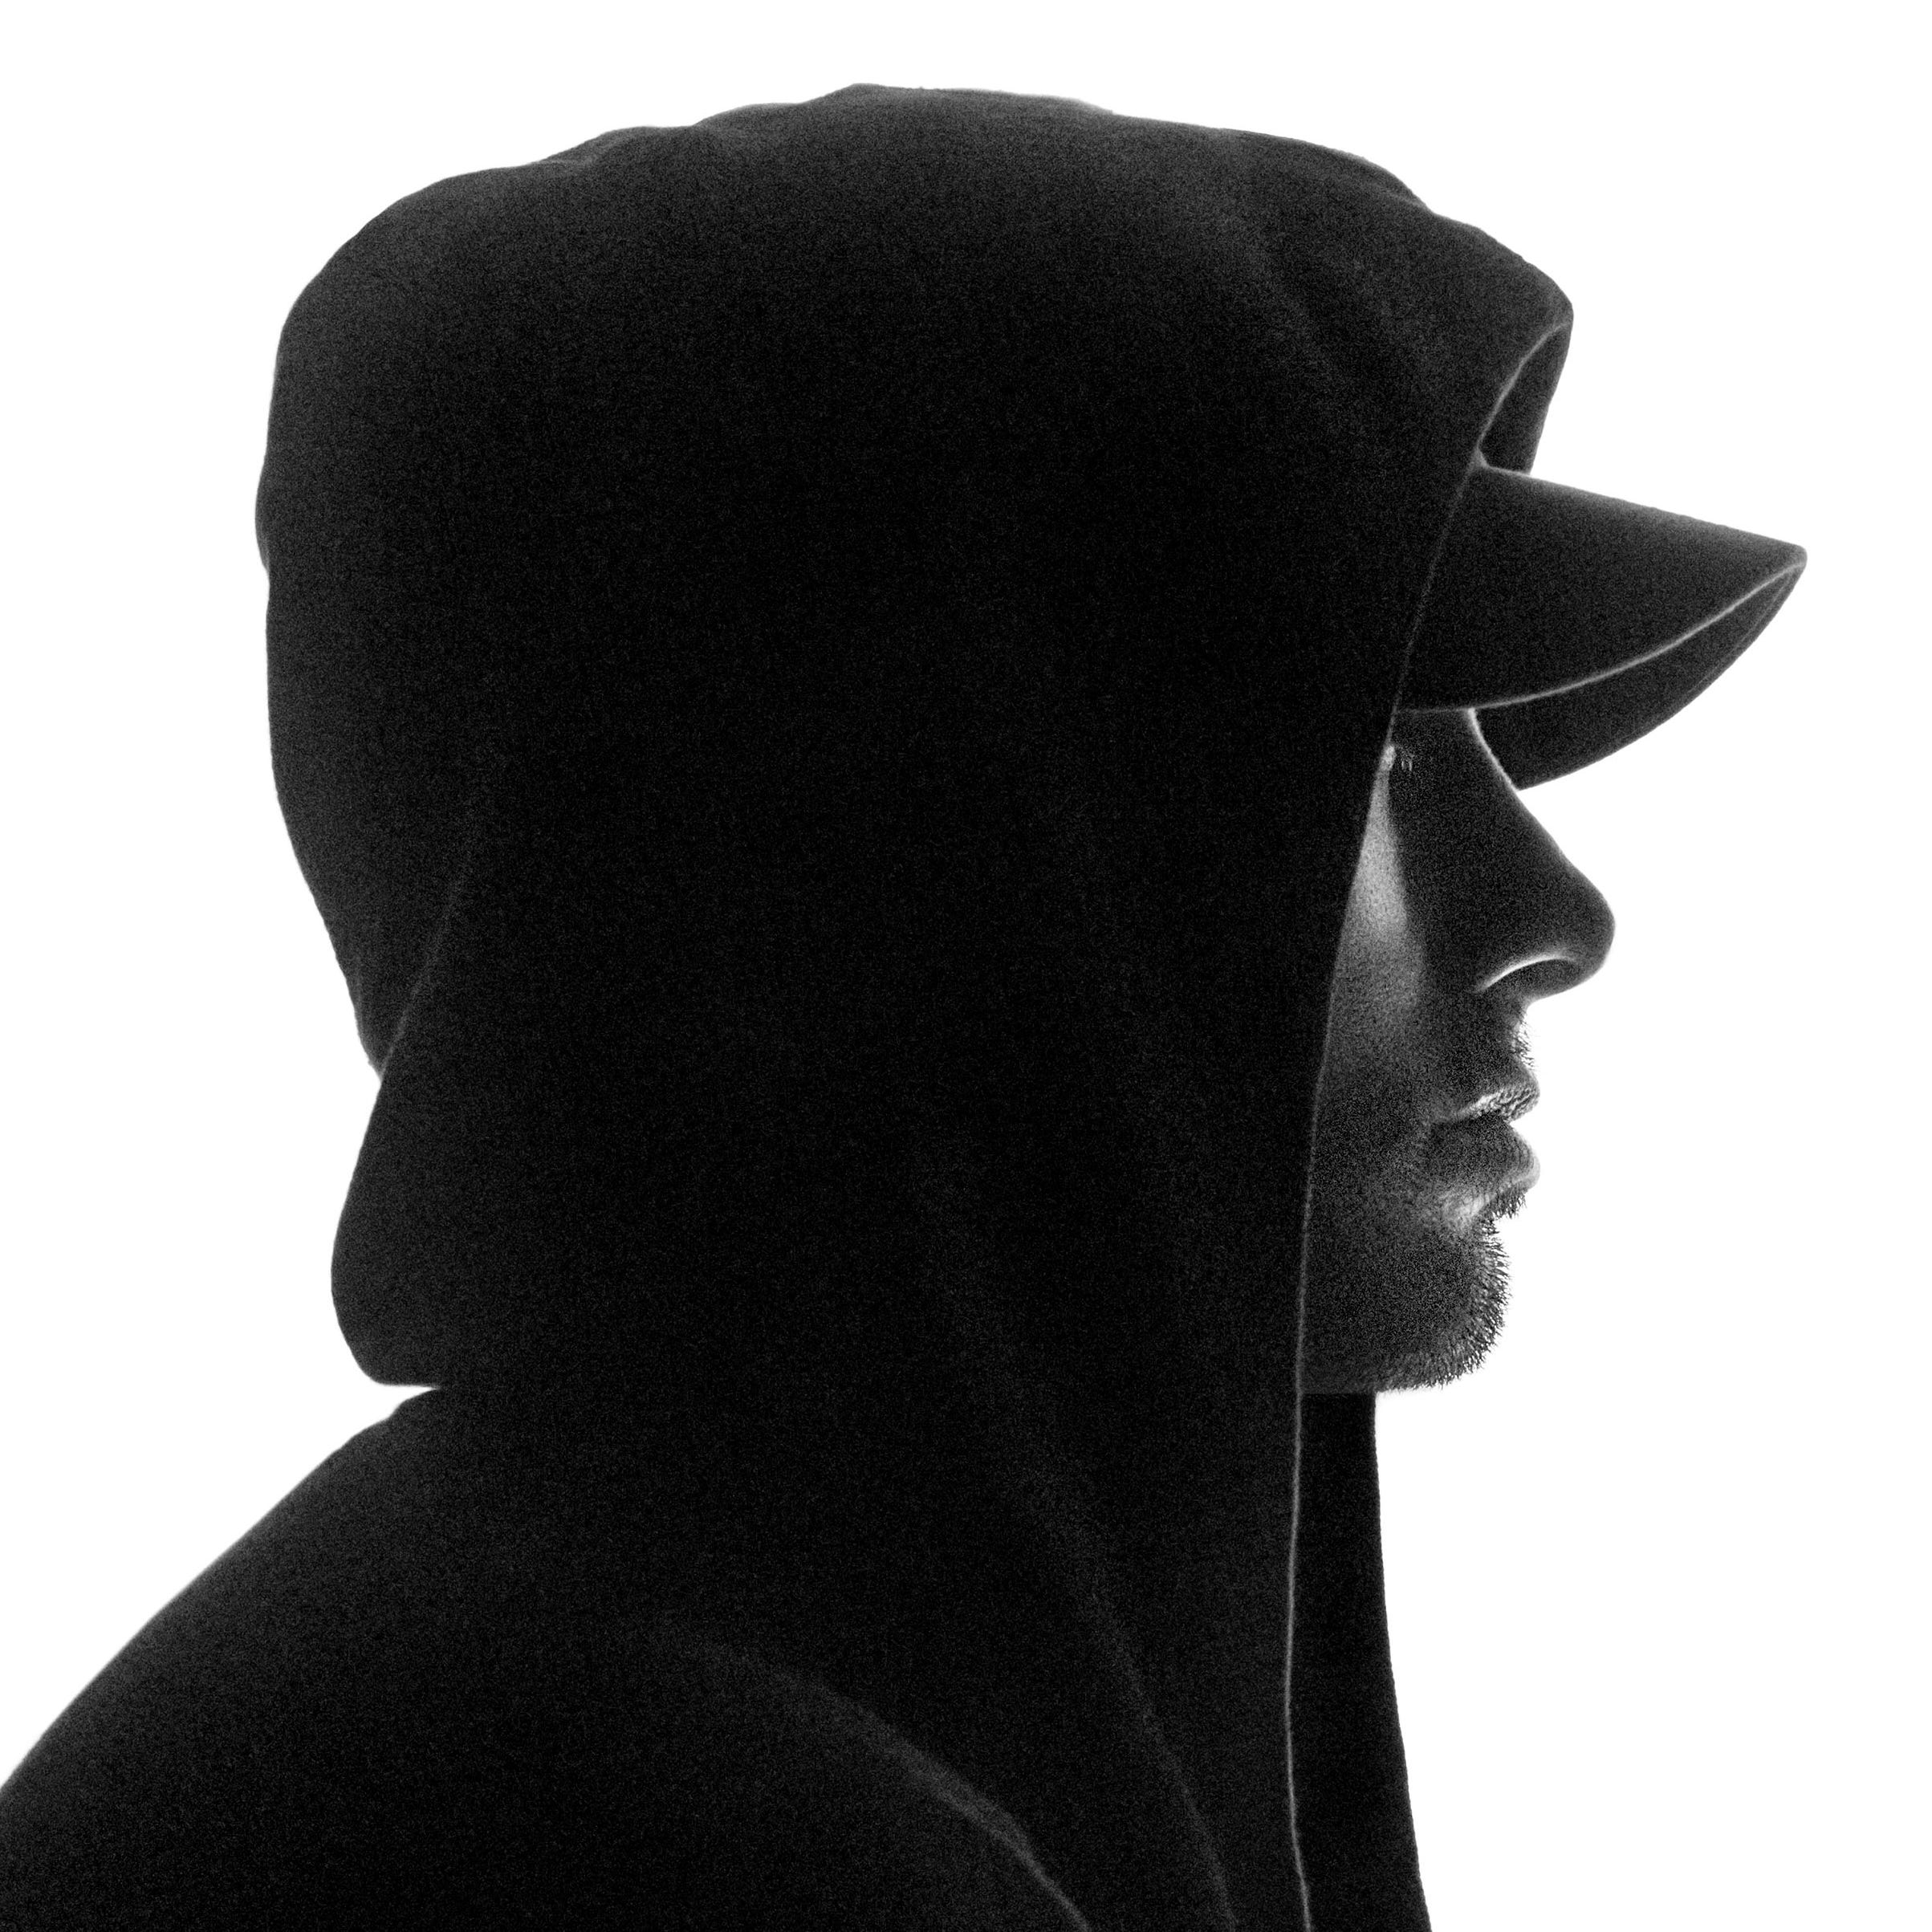 Eminem takes to Twitter to celebrate sobriety